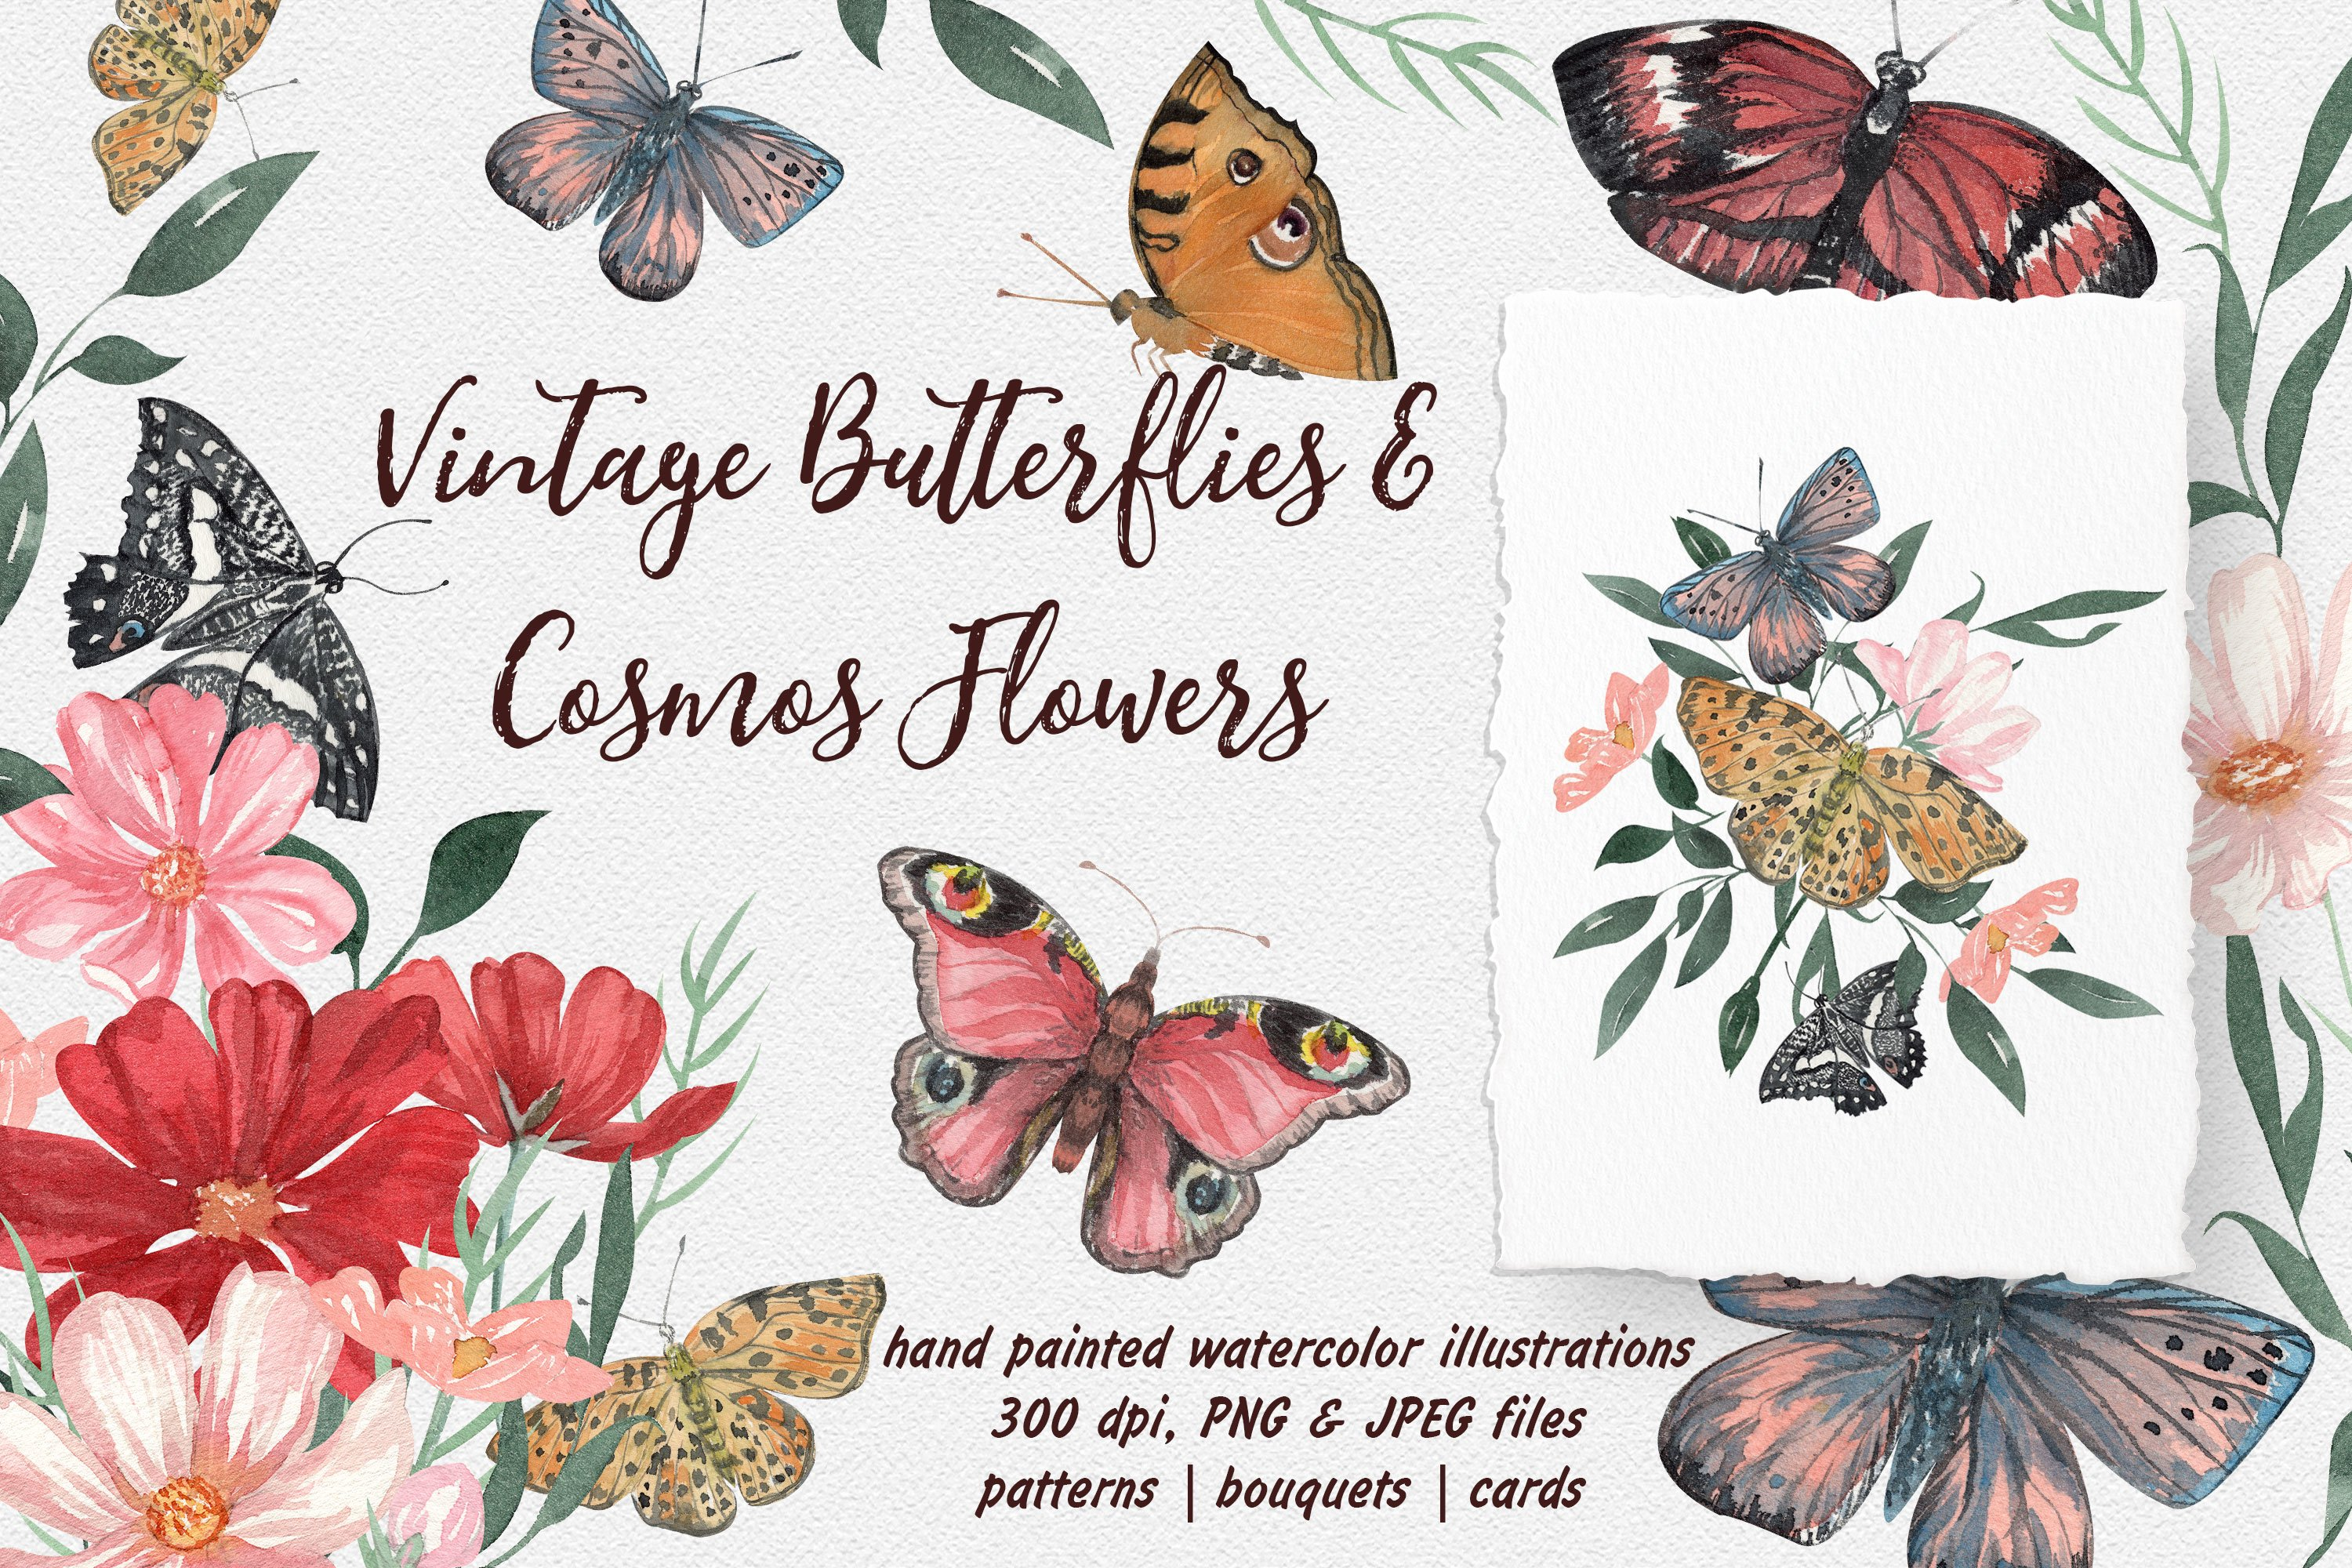 Vintage Butterflies And Cosmos Flowers Watercolor Collection 926522 Illustrations Design Bundles